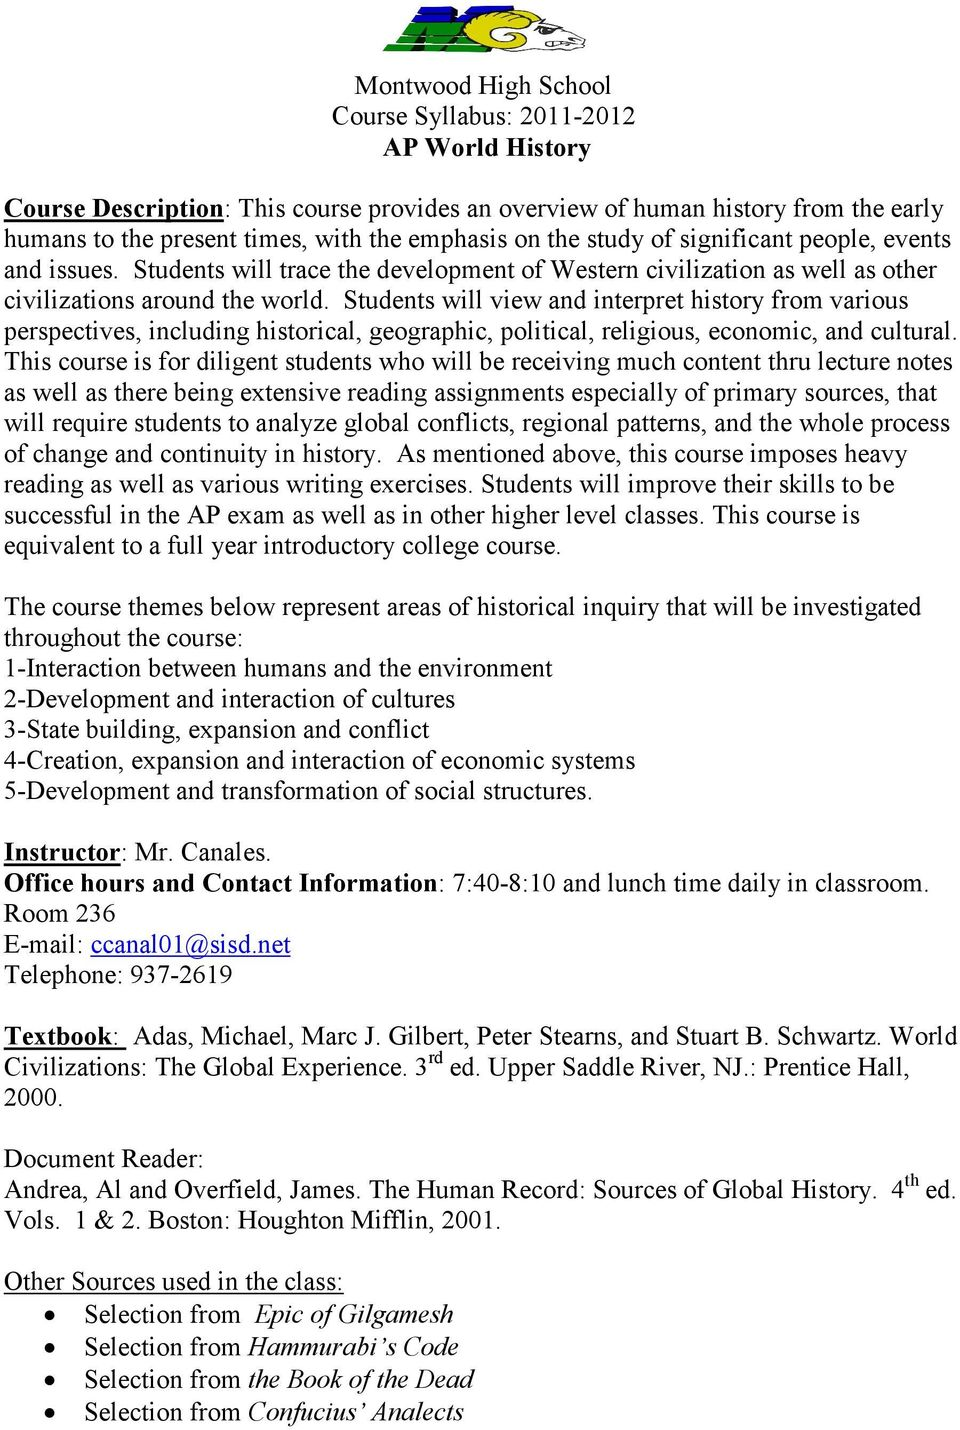 Montwood High School Course Syllabus: AP World History - PDF